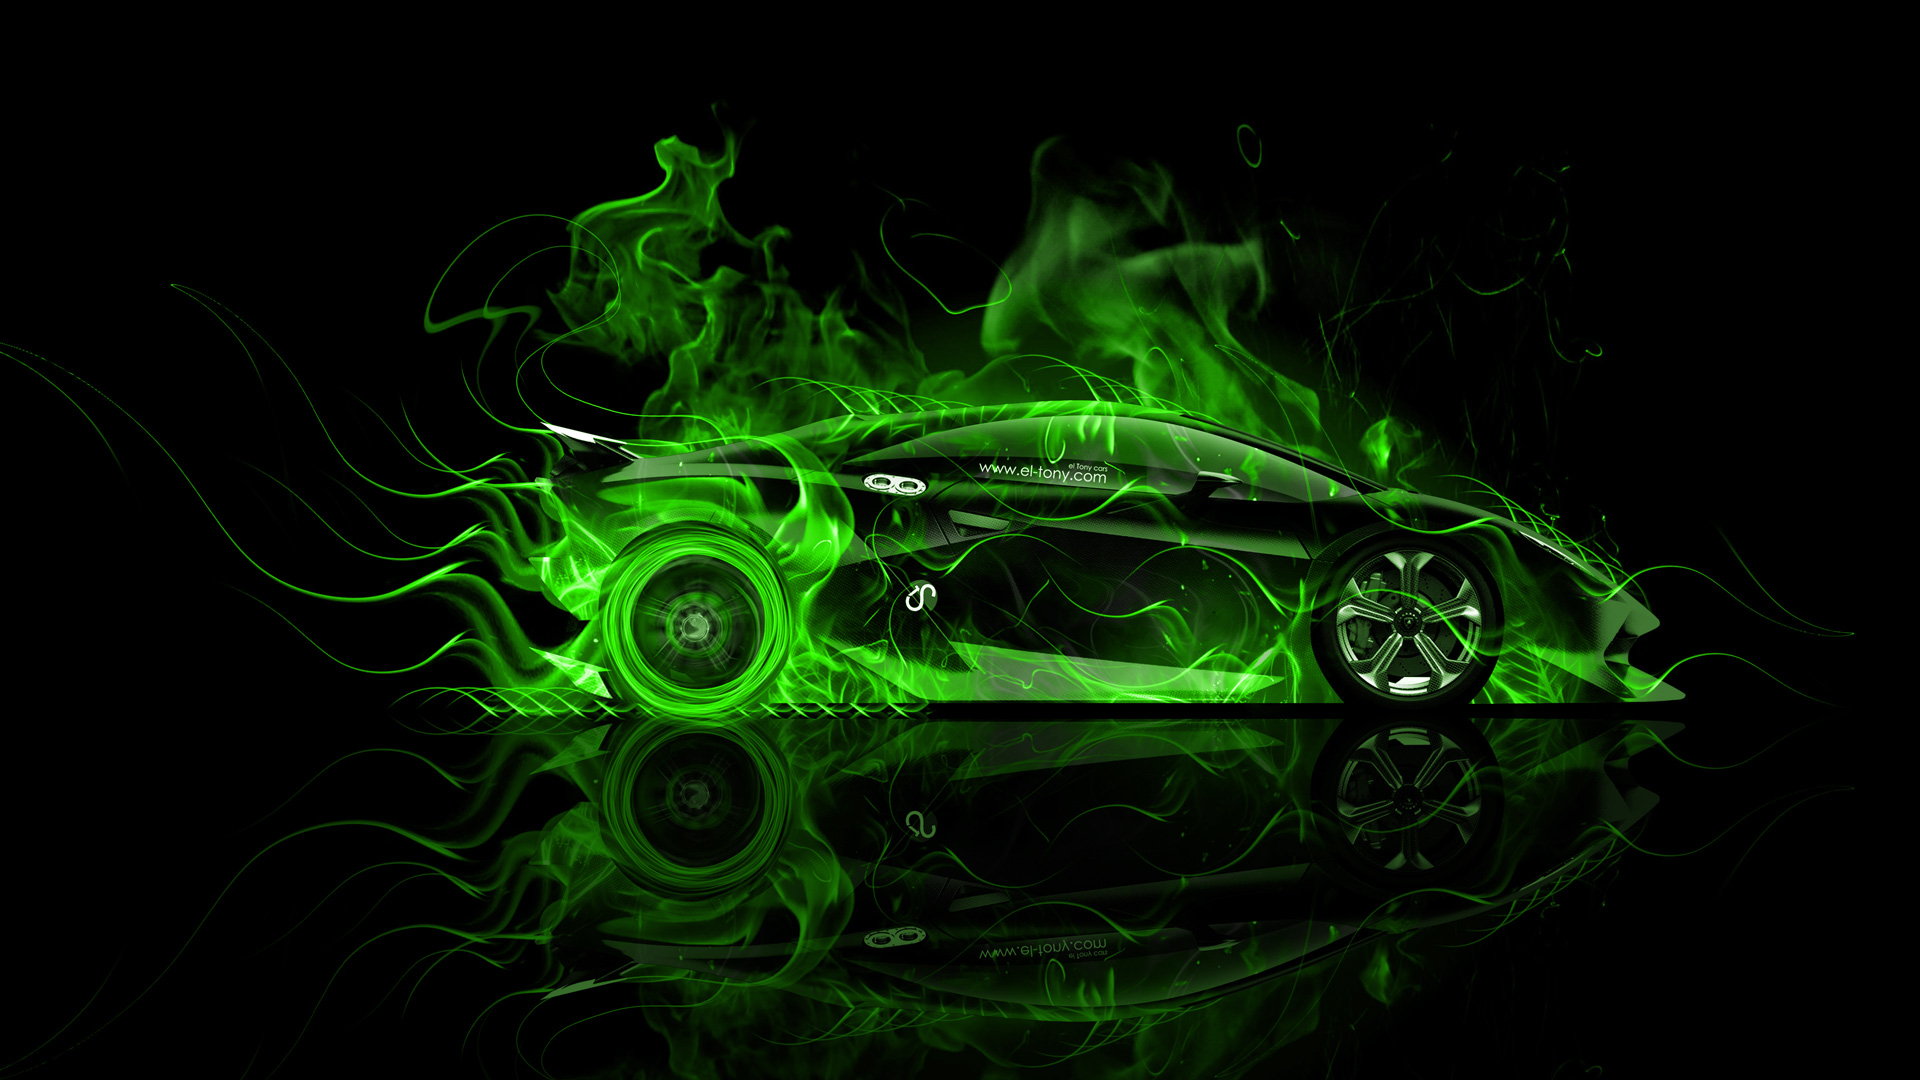 Lamborghini Sesto Elemento Side Green Fire Abstract Car Art Hd Wallpapers Design By Tony Kokhan   El Tony   X in addition Audi S Biturbo Tuning Mtm Side Blue Fire Abstract Car Art Hd Wallpapers Design By Tony Kokhan   El Tony likewise Lamborghini Asterion Back Fire Abstract Car Hd Wallpapers Design By Tony Kokhan   El Tony   X furthermore Ferrari Fxx K Side Fire Abstract Car Yellow Colors Hd Wallpapers Design By Tony Kokhan   El Tony   Image also Subaru Impreza Wrx Sti Jdm Tuning Front Fire Flame Abstract Car Yellow Black Colors K Wallpapers El Tony Cars Design By Tony Kokhan   I V Tv Image. on subaru impreza wrx sti jdm tuning front fire flame